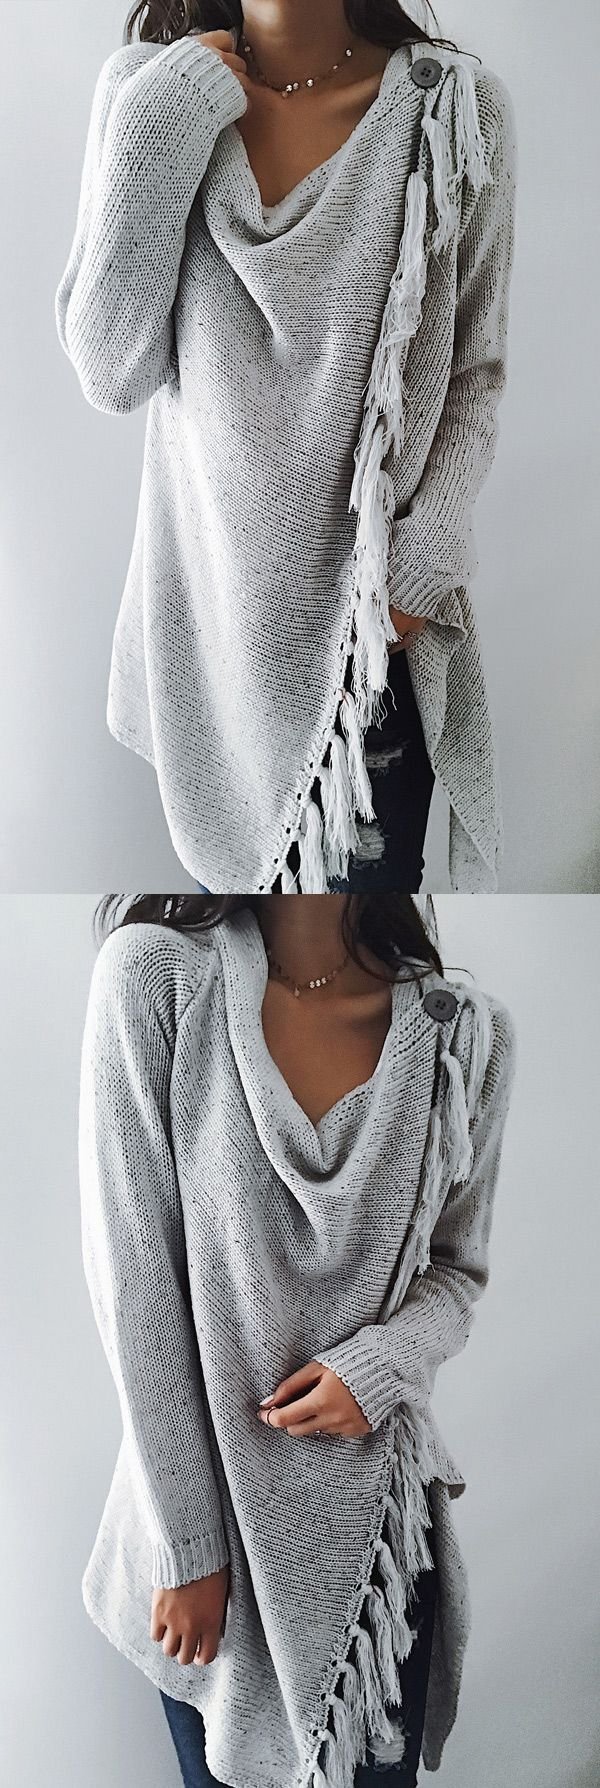 $47.99! Chicnico 2017 Grey Tassel Asymmetrical Hem Shawl Speckled Fringe Cardigan ready for Fall fashion! Find fashionable outfits for the new